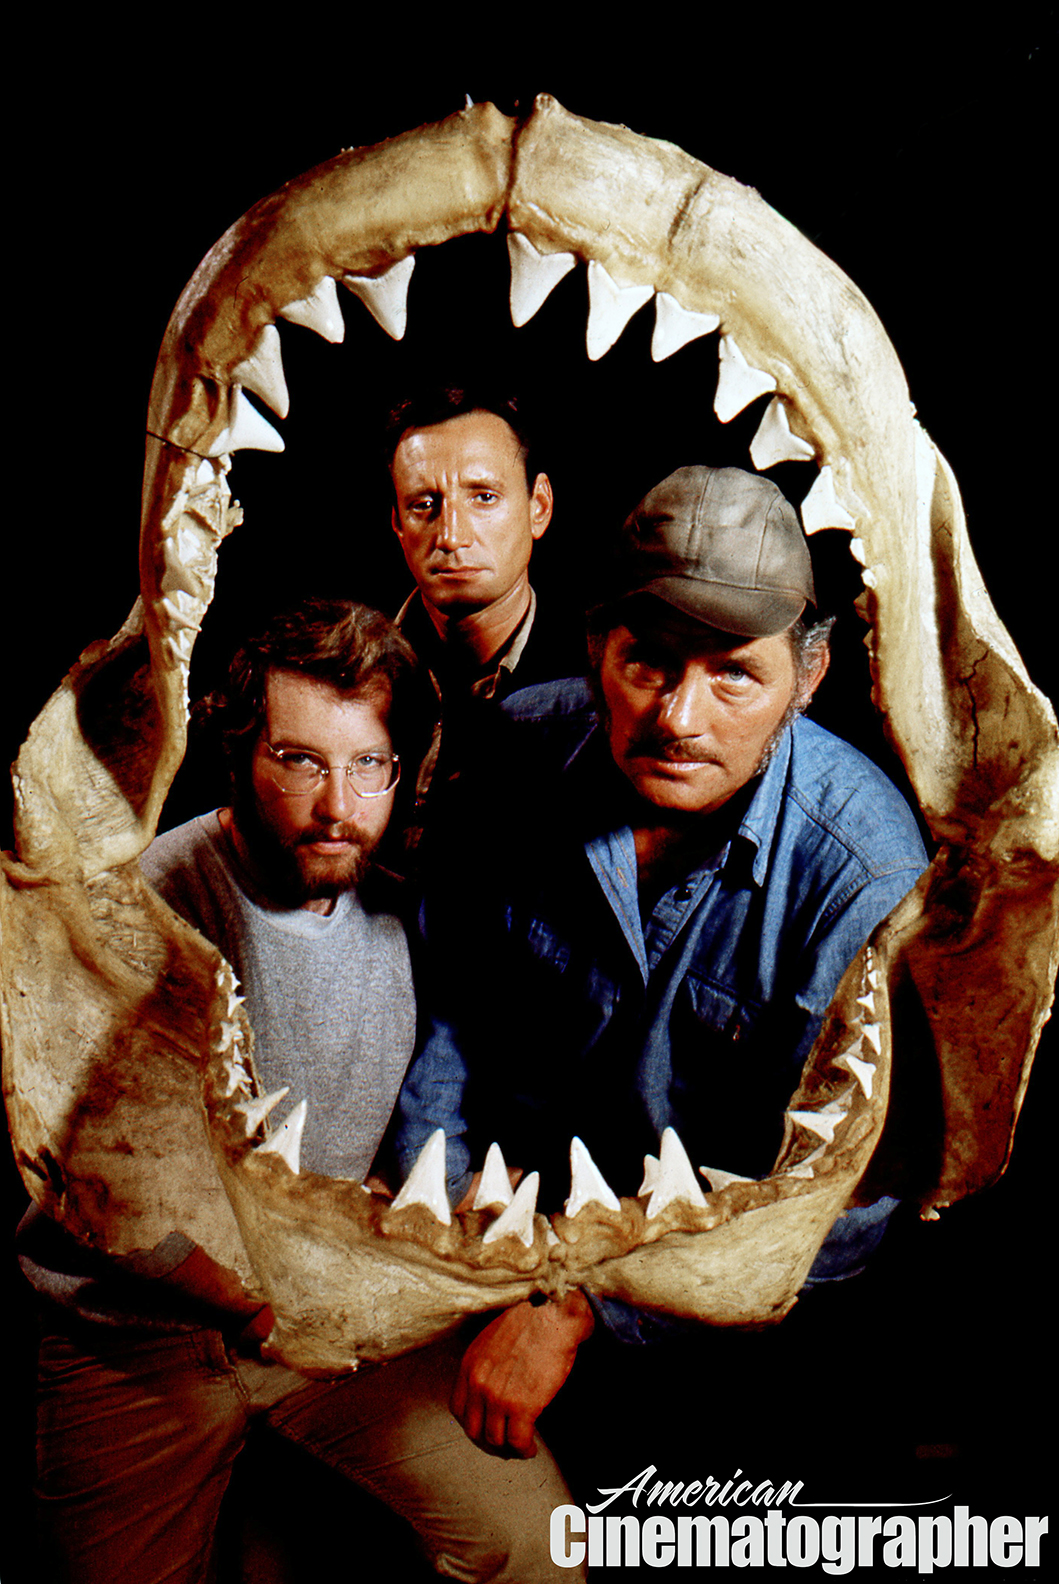 Richard Dreyfuss, Roy Scheider and Robert Shaw in a classic publicity image from Jaws (1975).